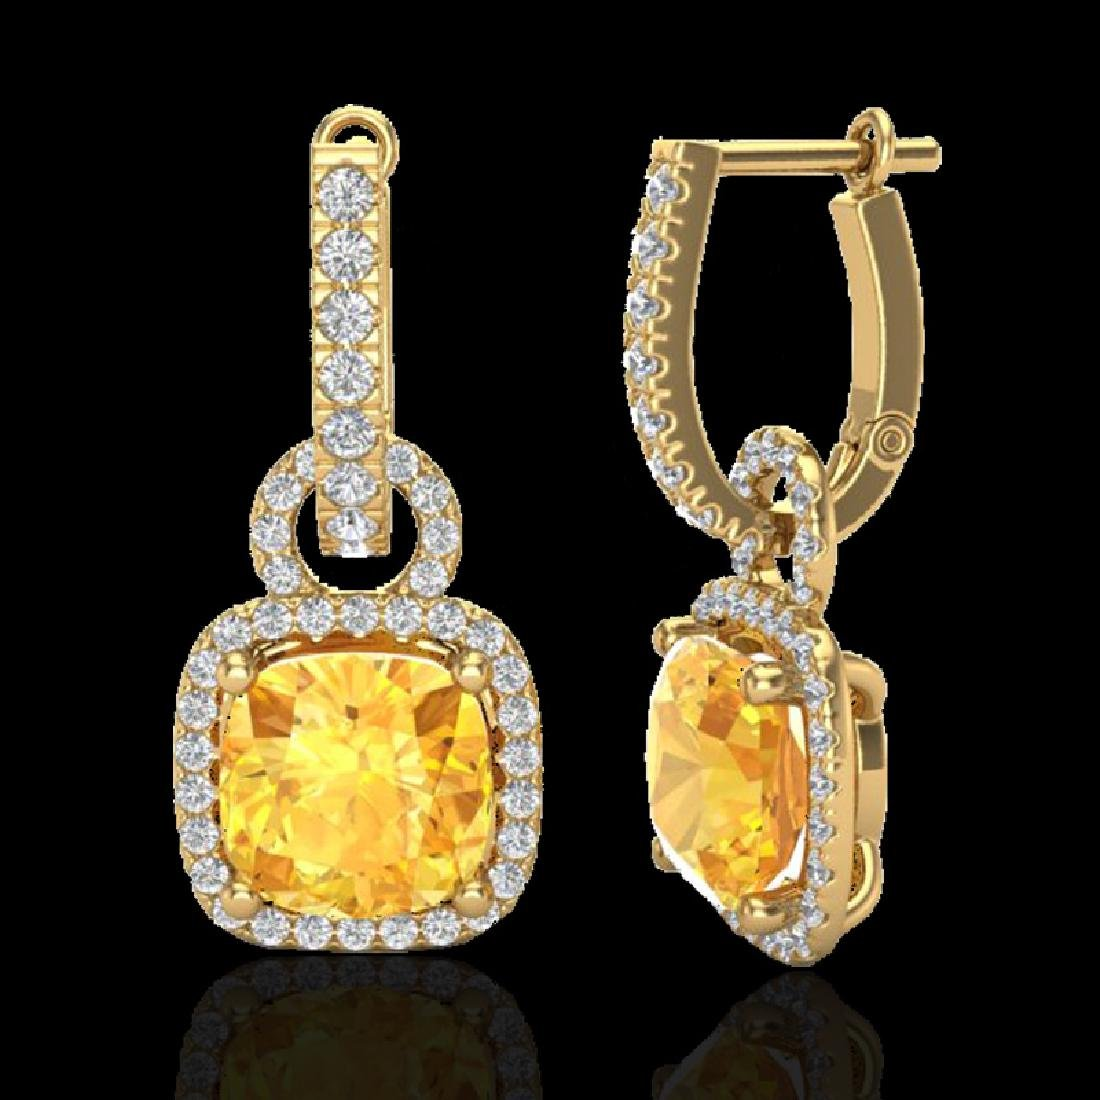 7 CTW Citrine & Micro Pave VS/SI Diamond Earrings 18K - 2